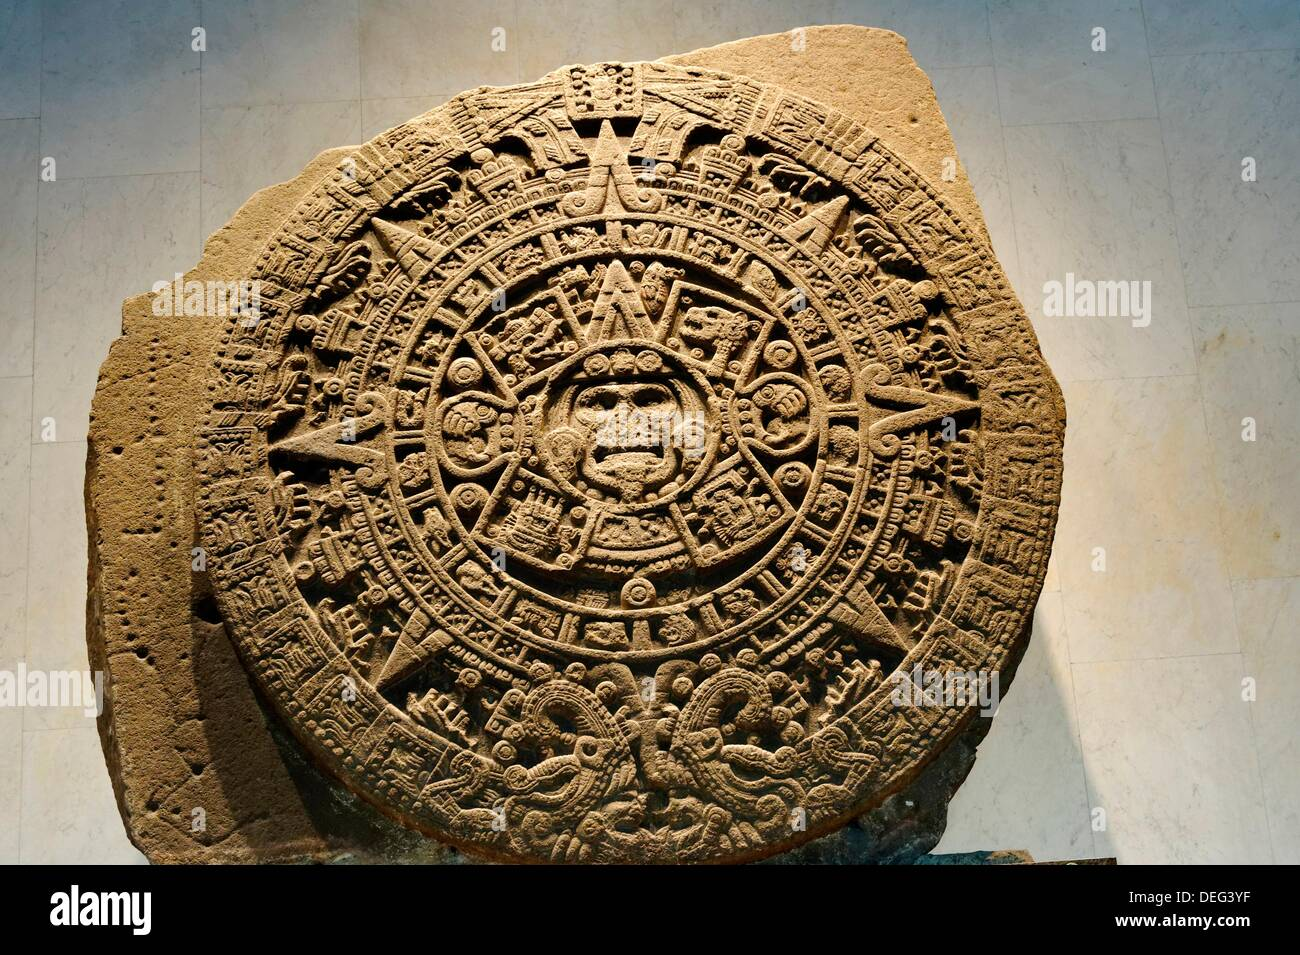 Aztec Calendar Stone.The Aztec Calendar Stone Mexica Sun Stone Or Stone Of The Sun Is A